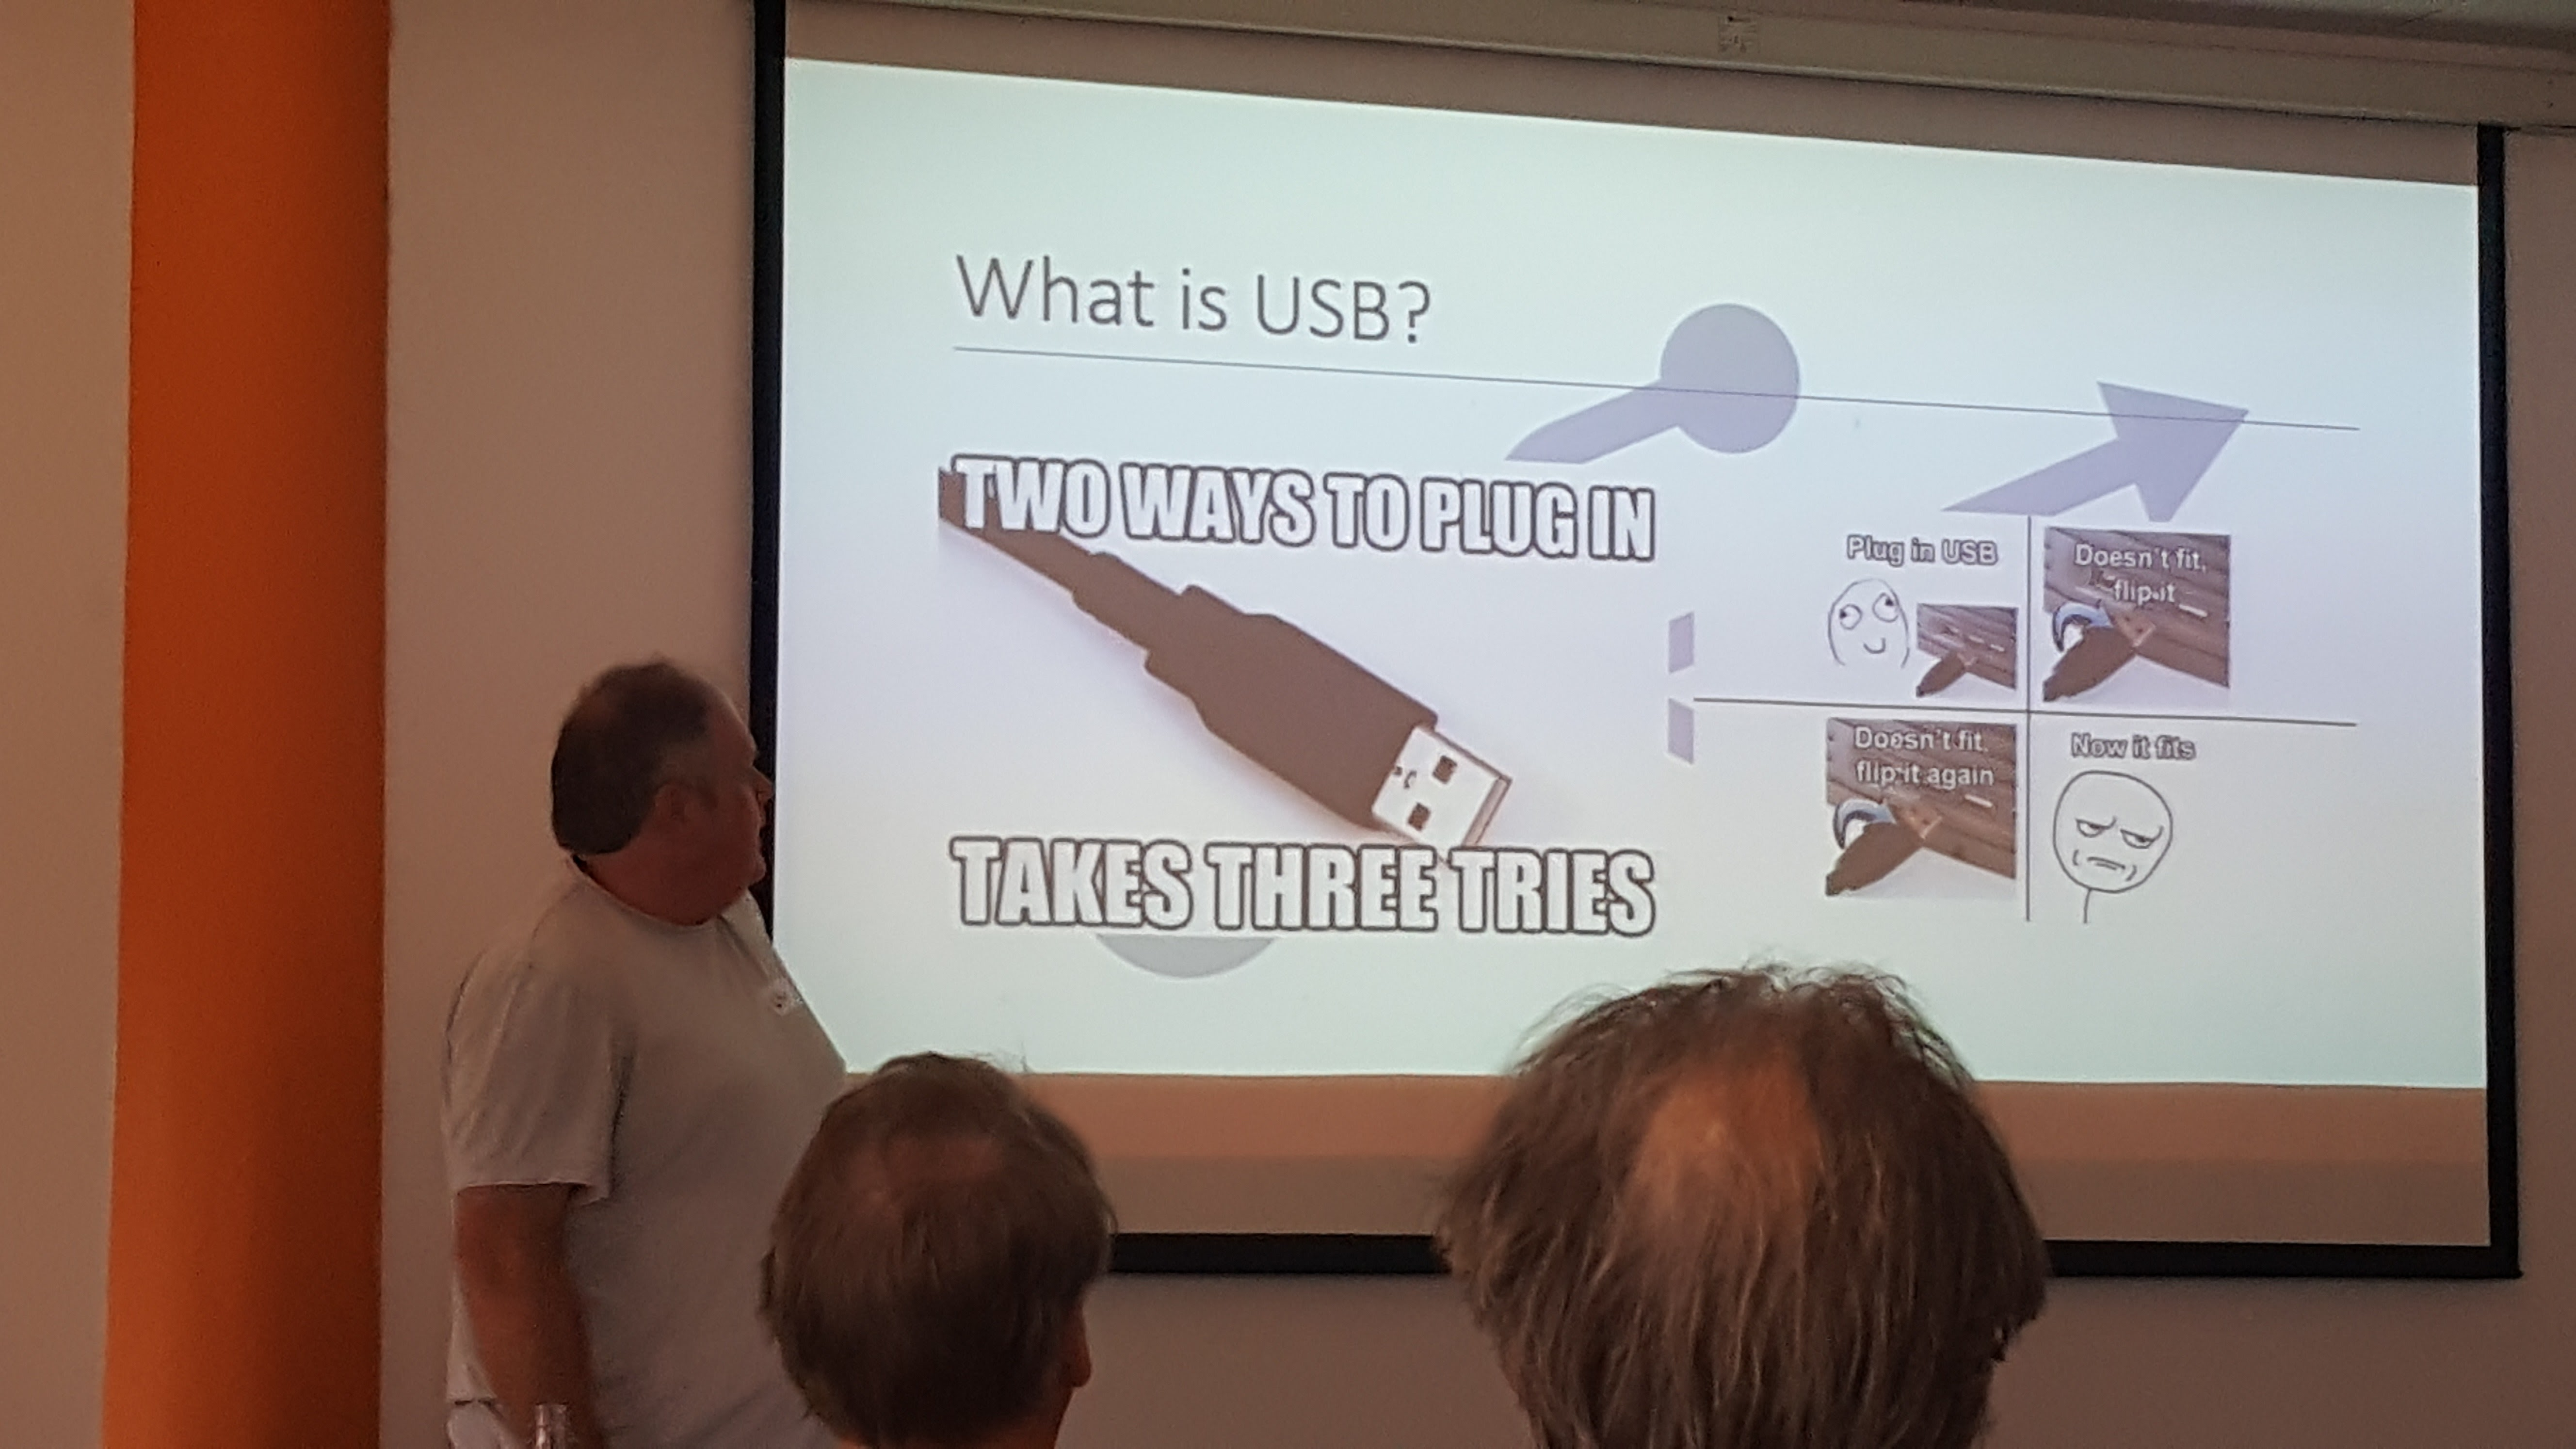 Build your own USB devices